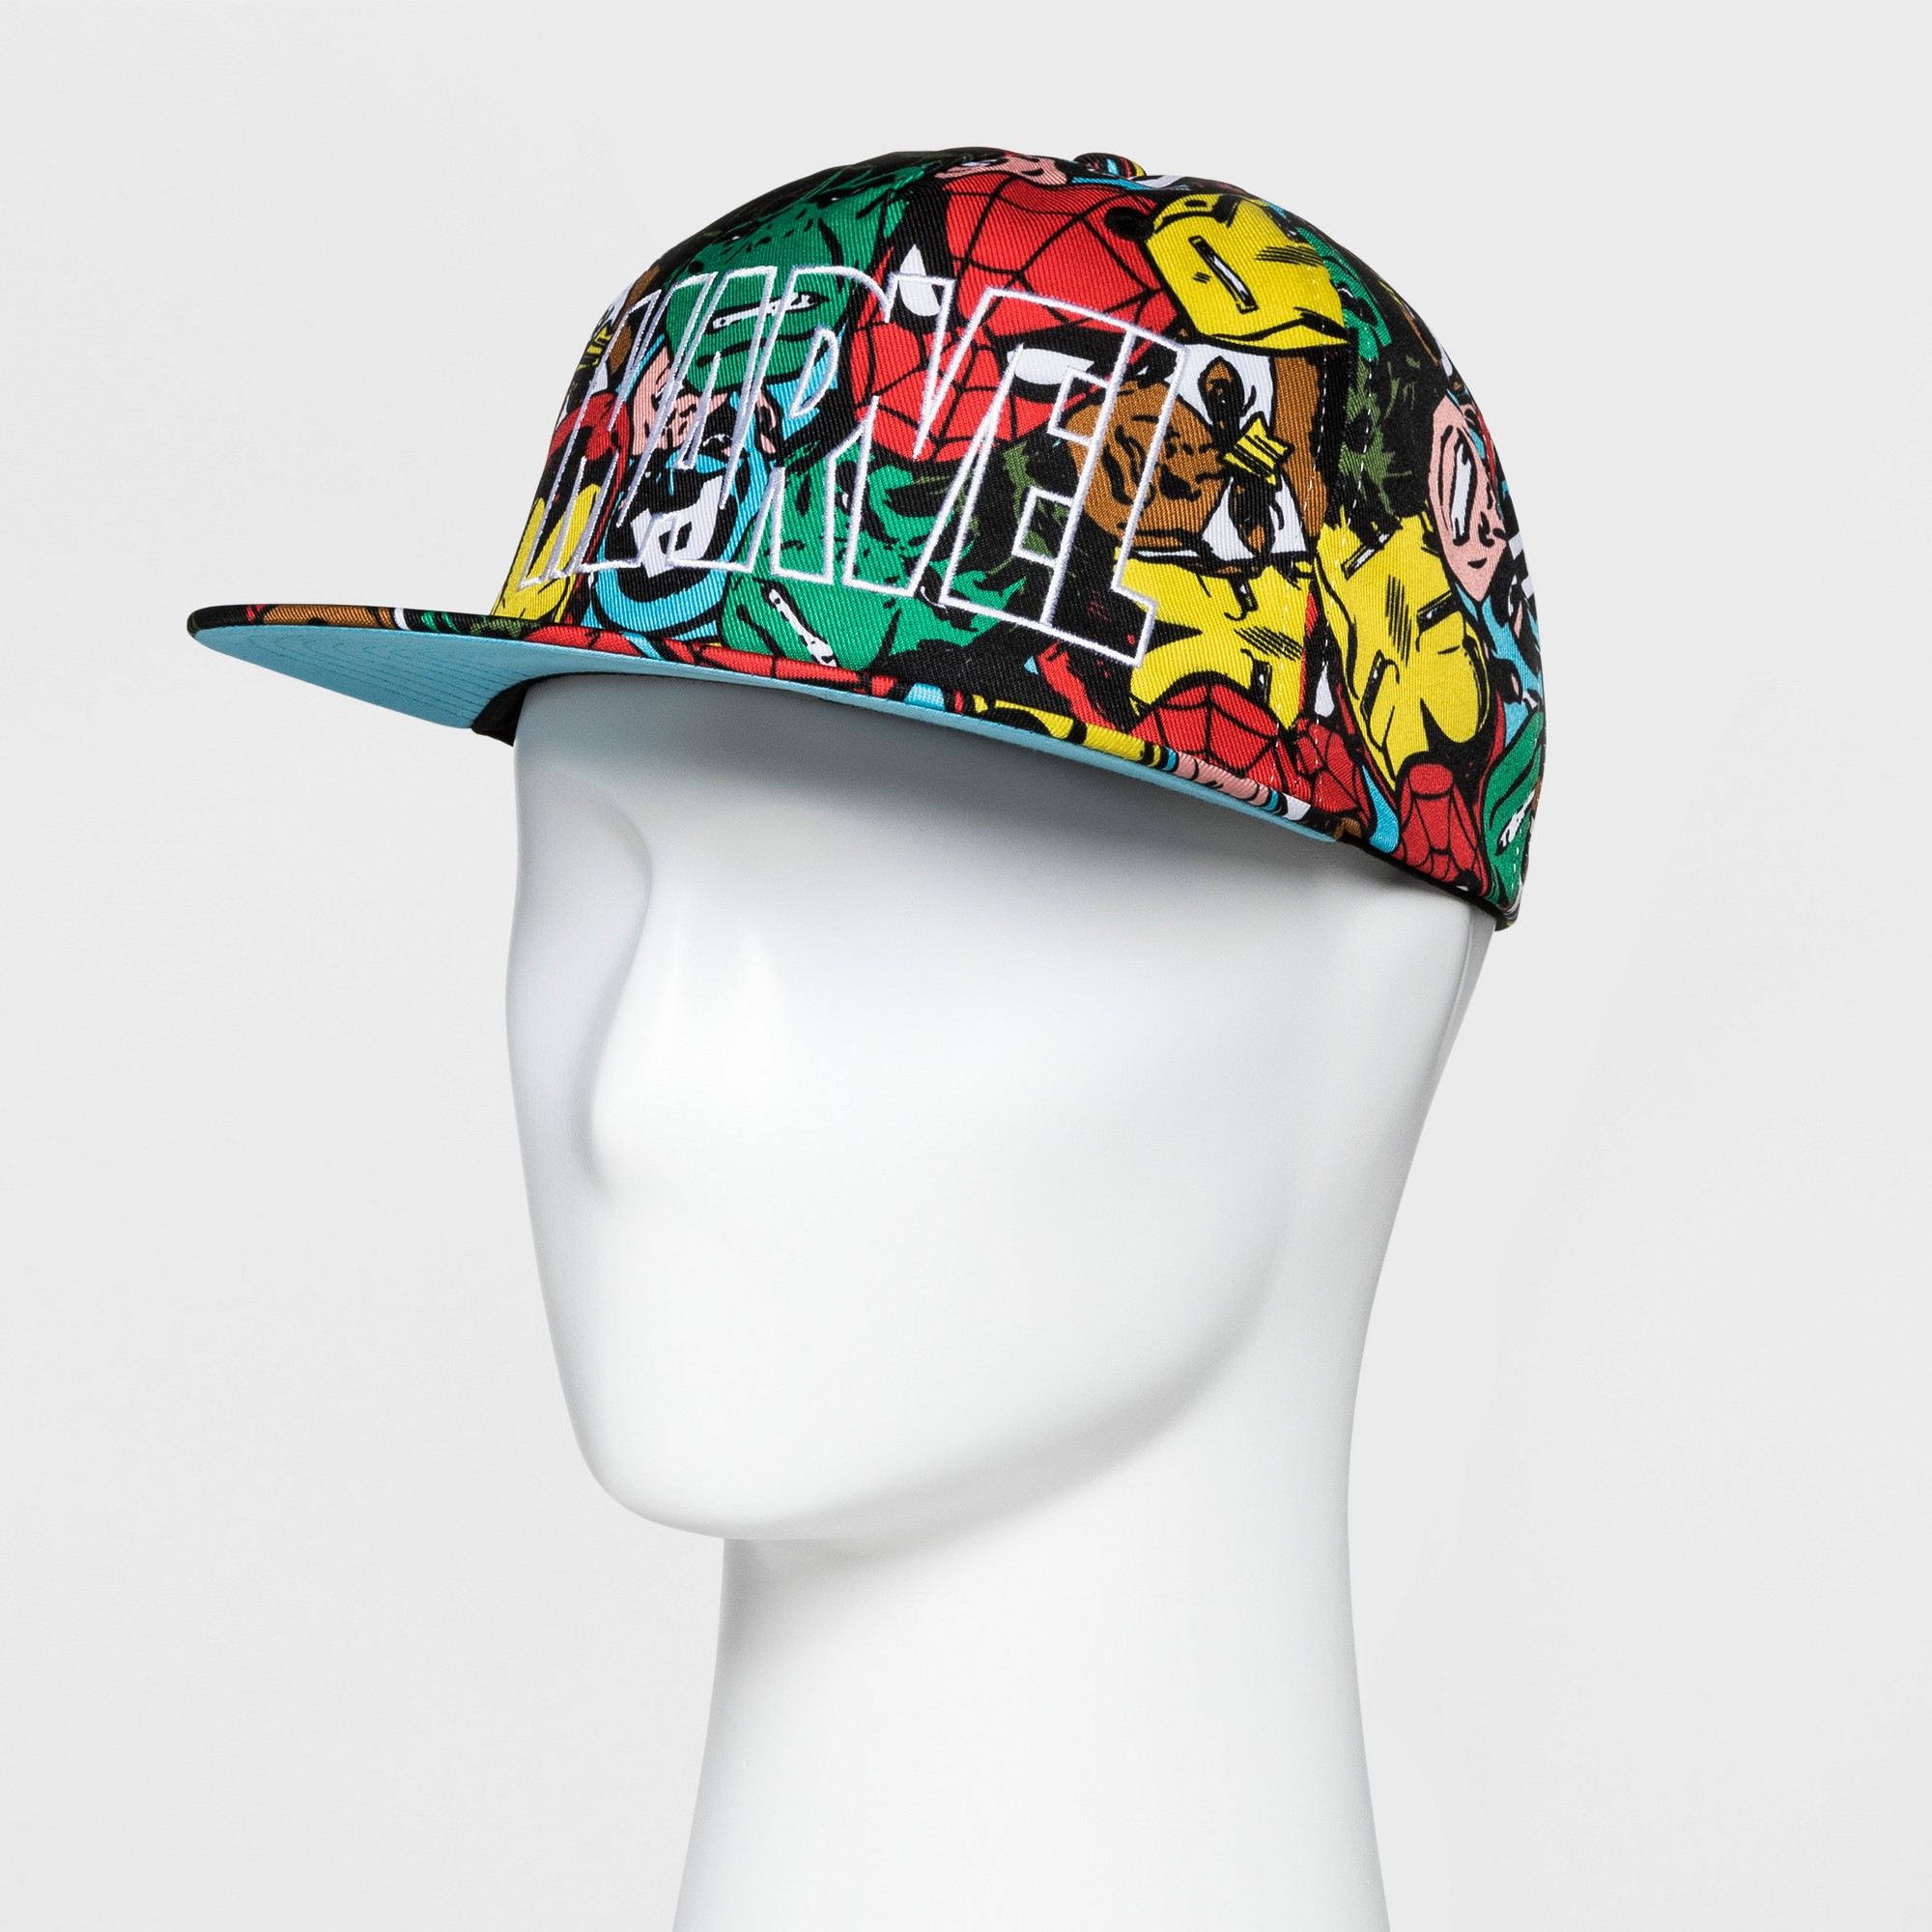 on sale 826e5 cc9f2 Marvel Men s Flat Brim Hat - Multi One Size, Multi-Colored